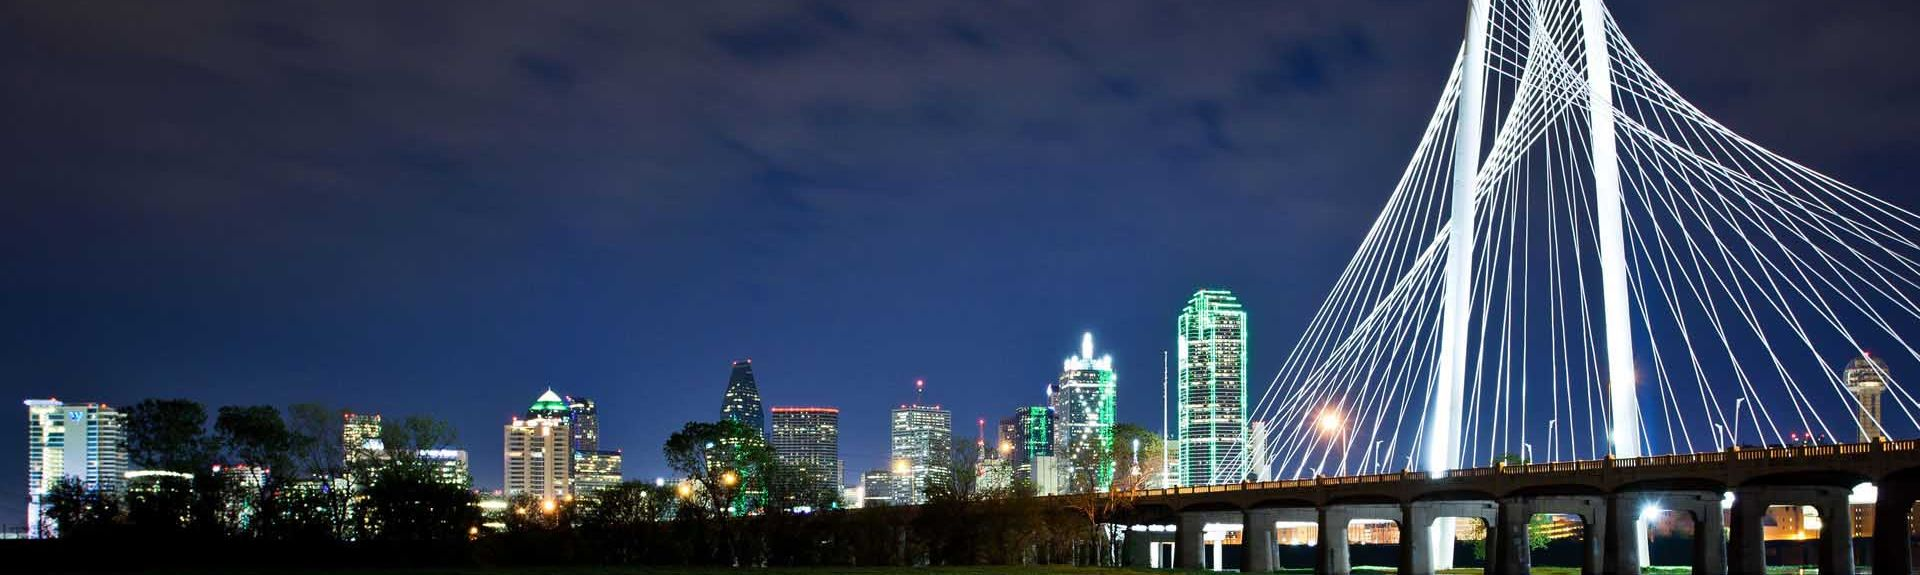 Dallas Arts District, Dallas, Texas, Verenigde Staten